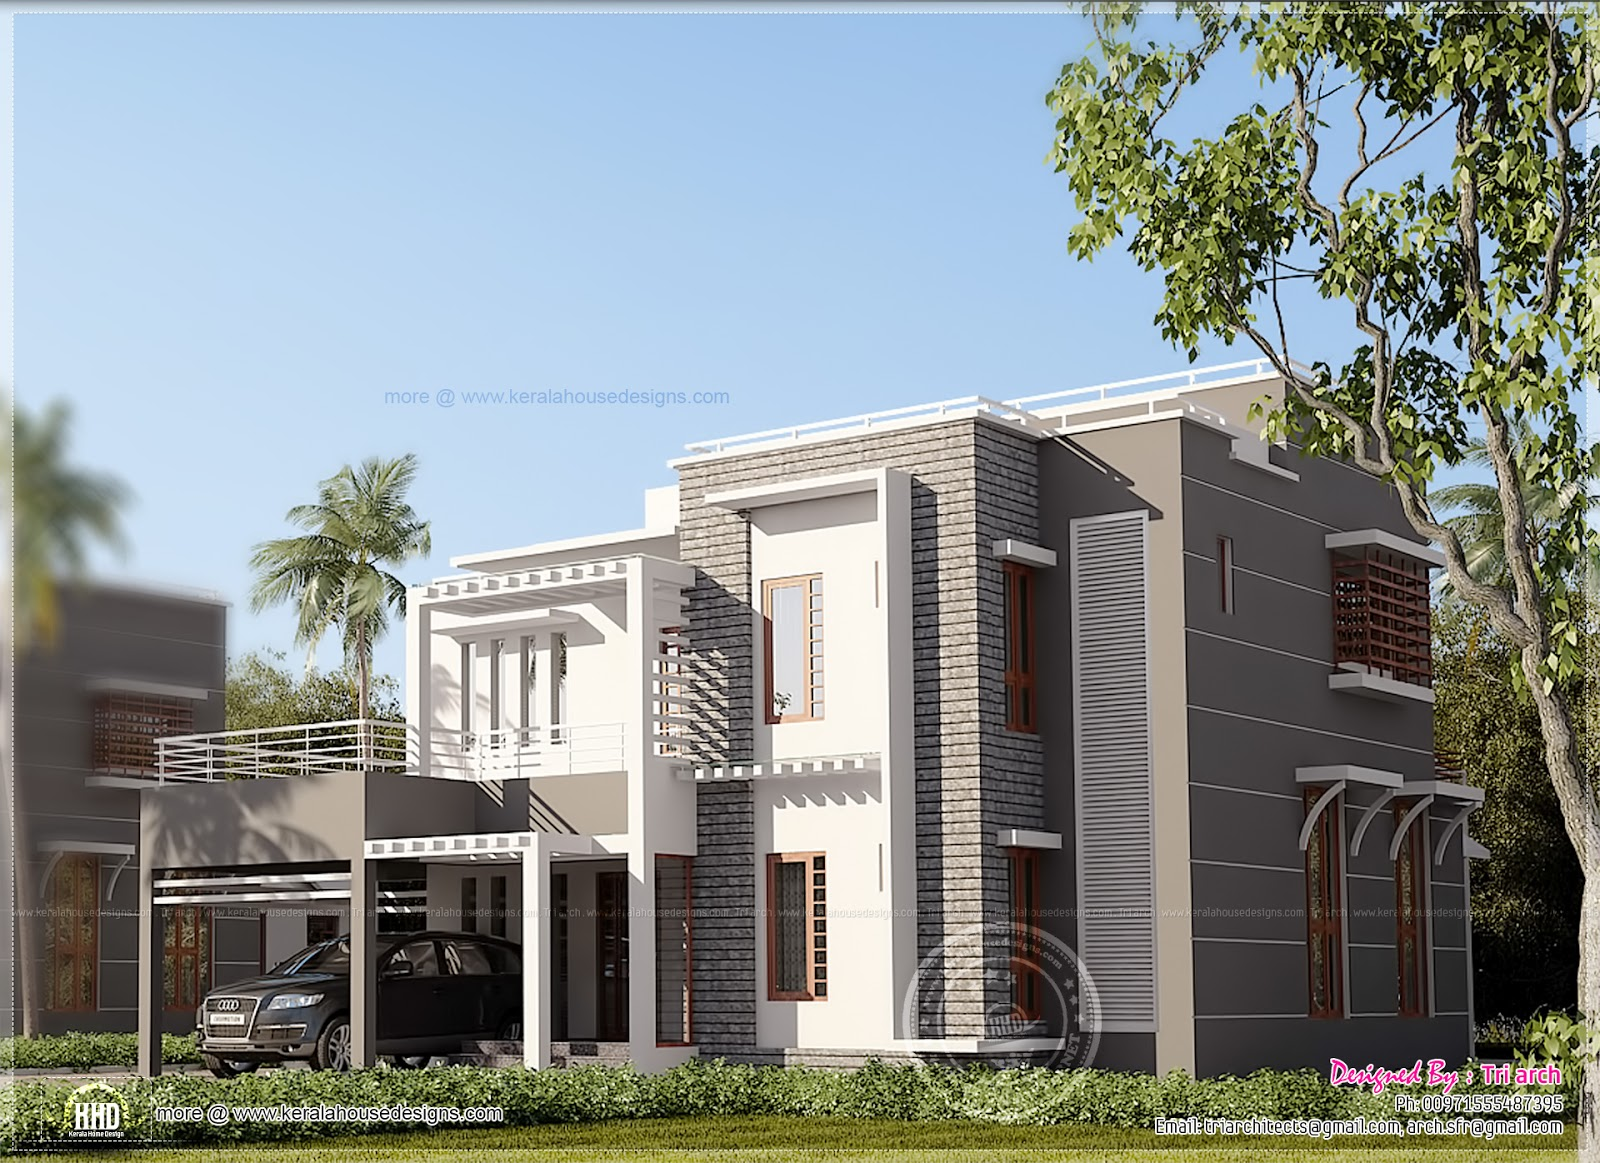 Contemporary home design in kerala home kerala plans for Kerala contemporary home designs